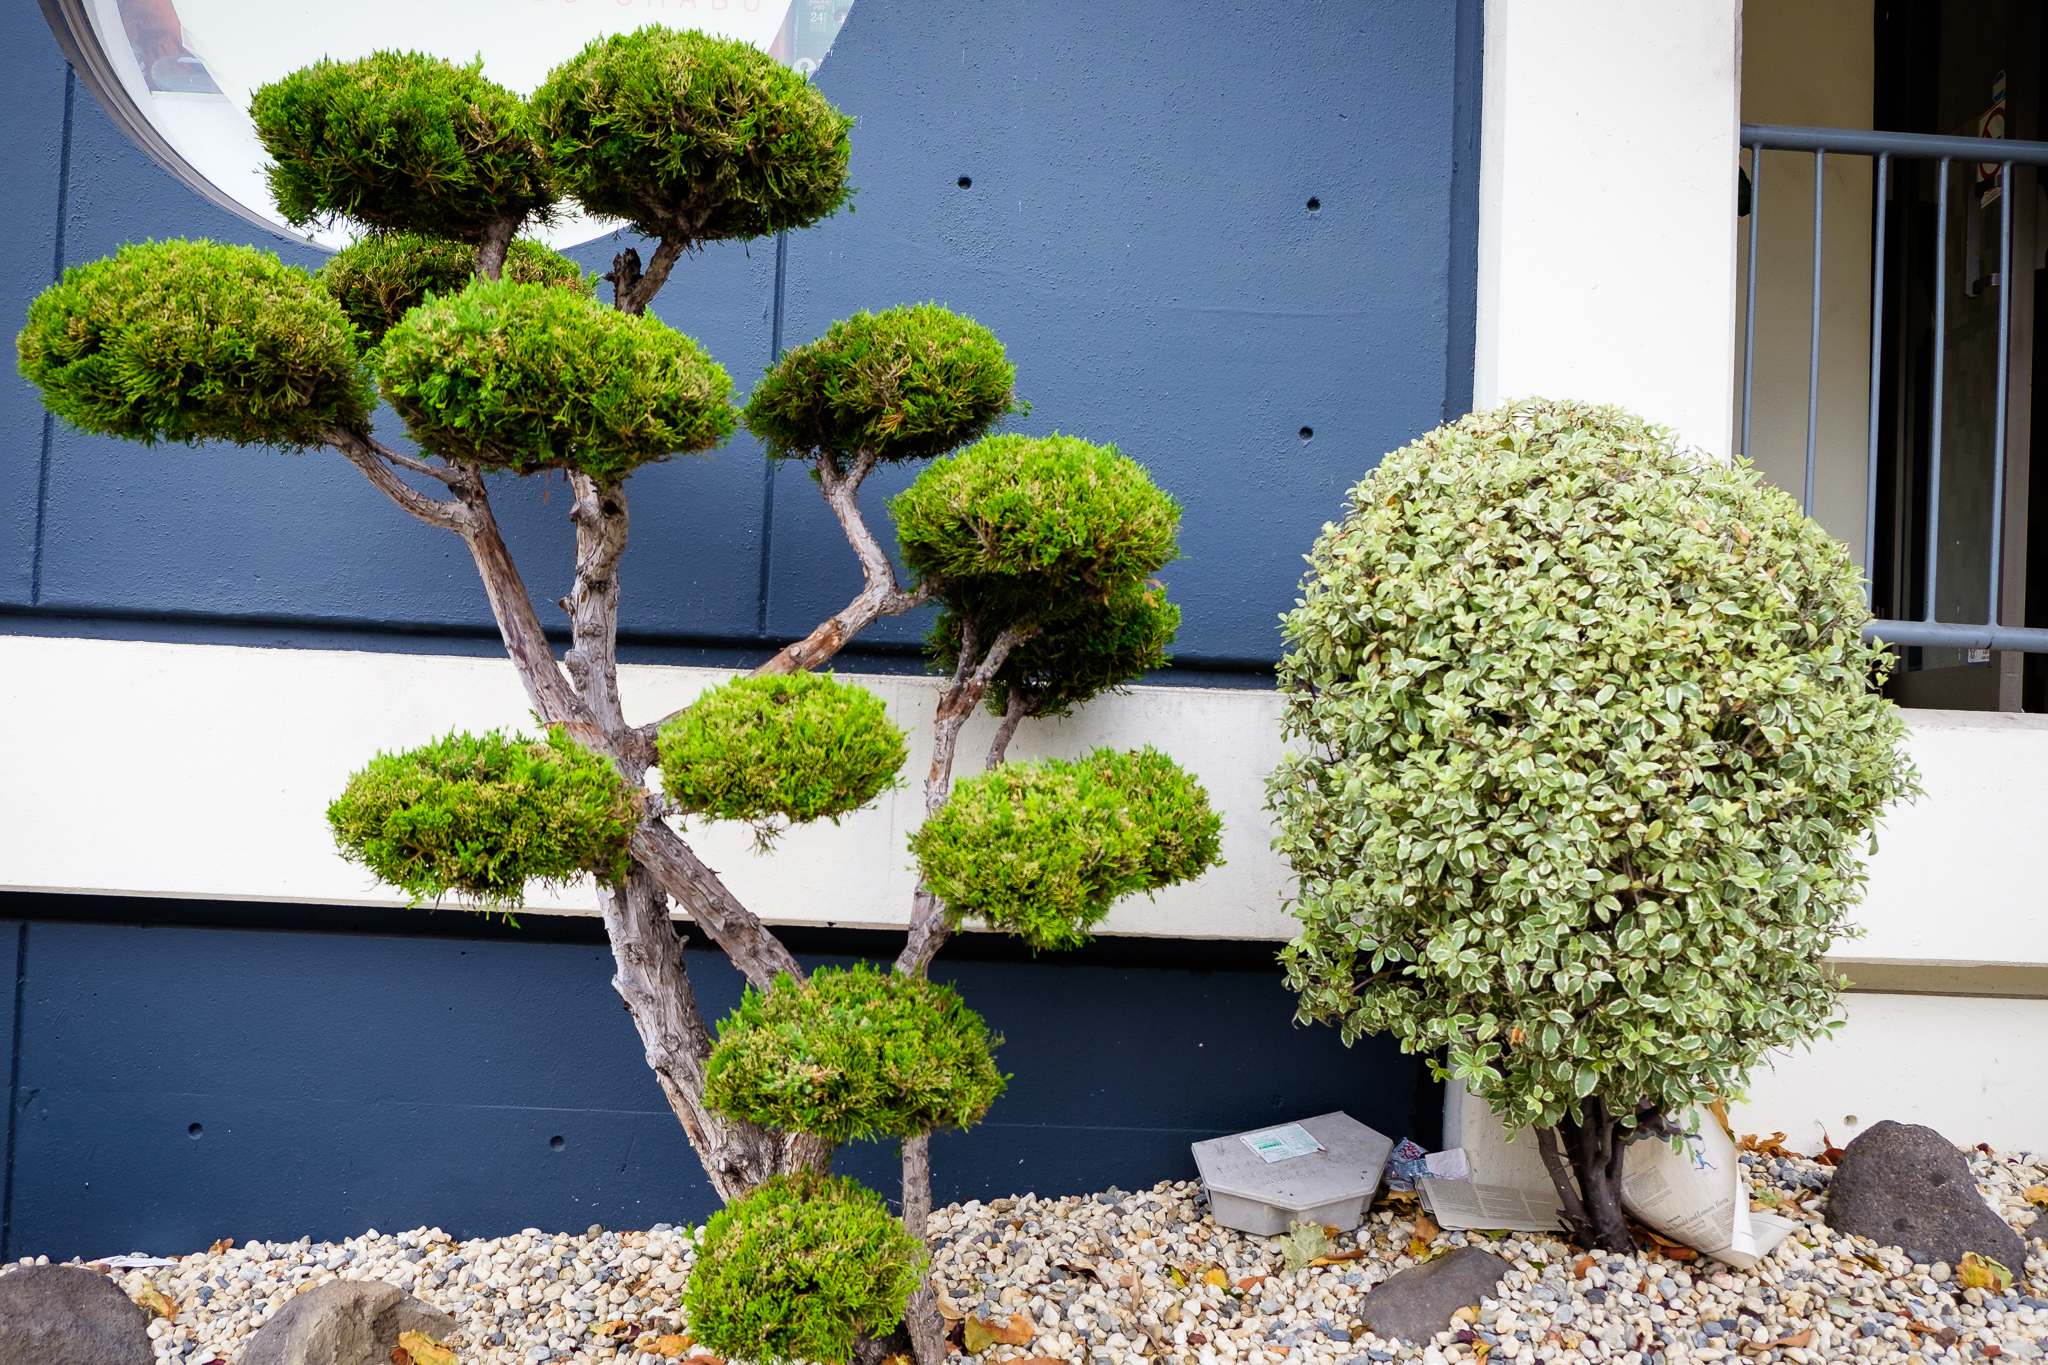 Bushes in Japantown